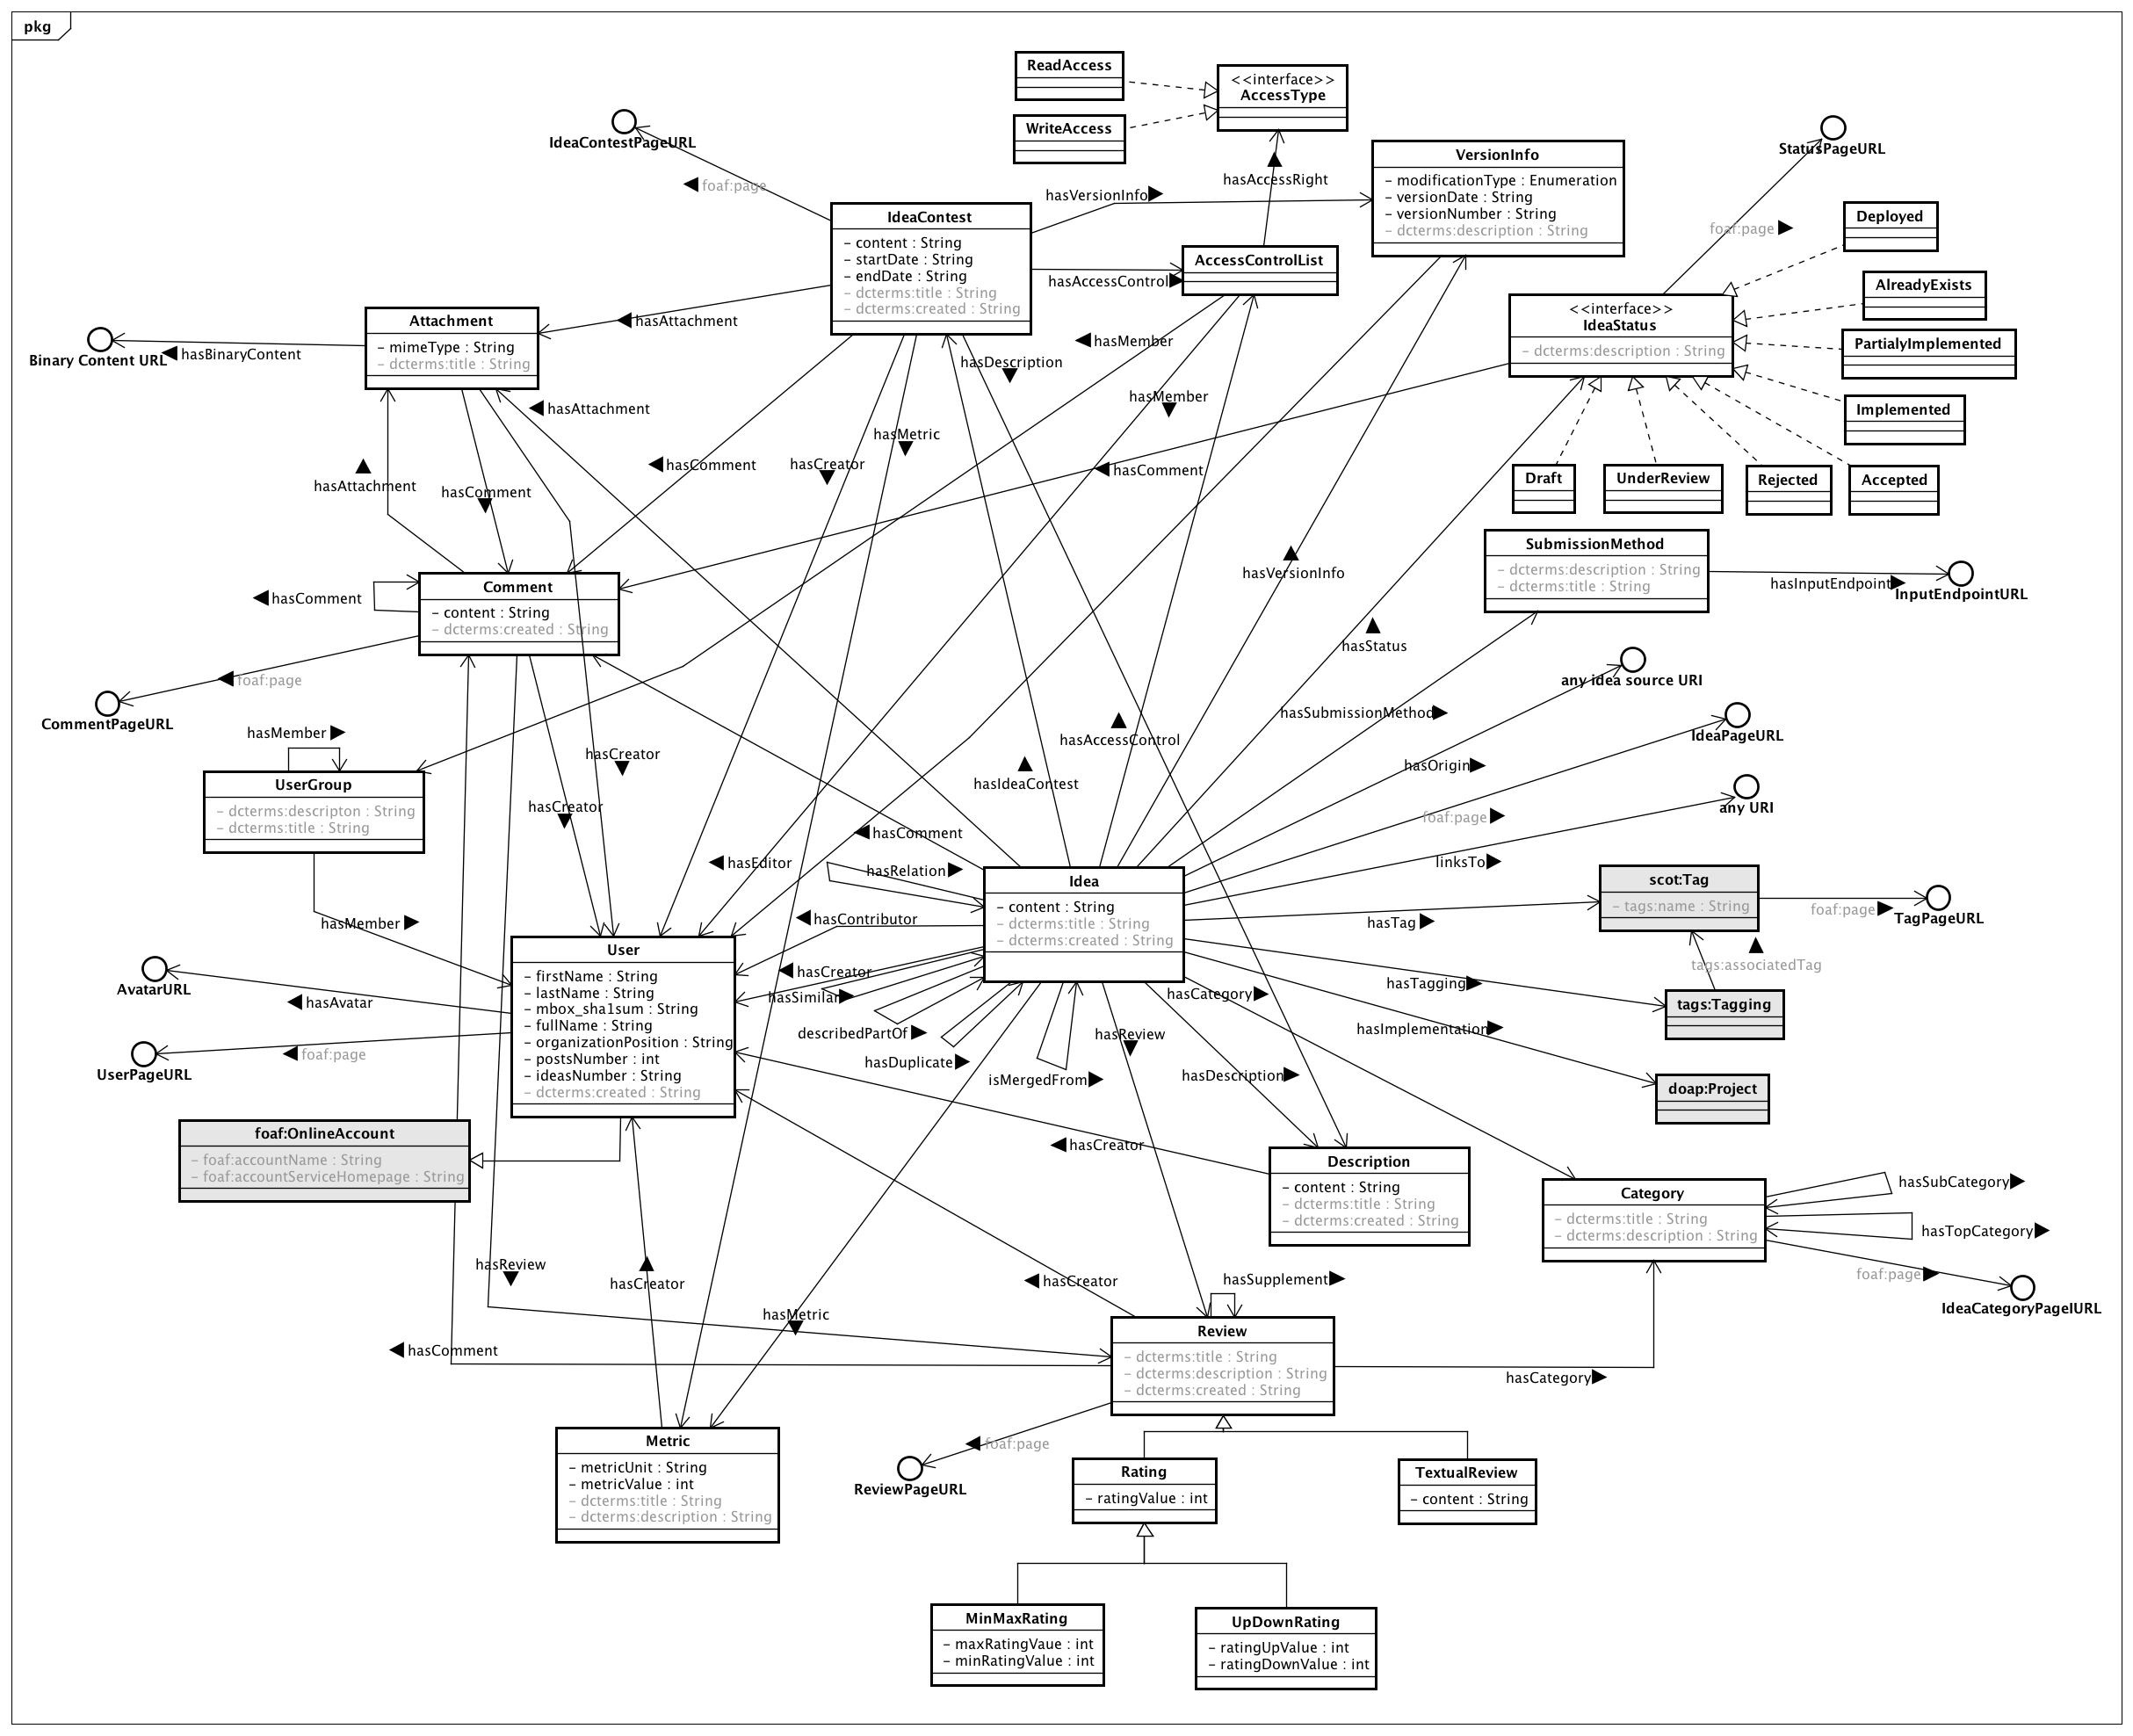 Gi2mo Ontology Specification